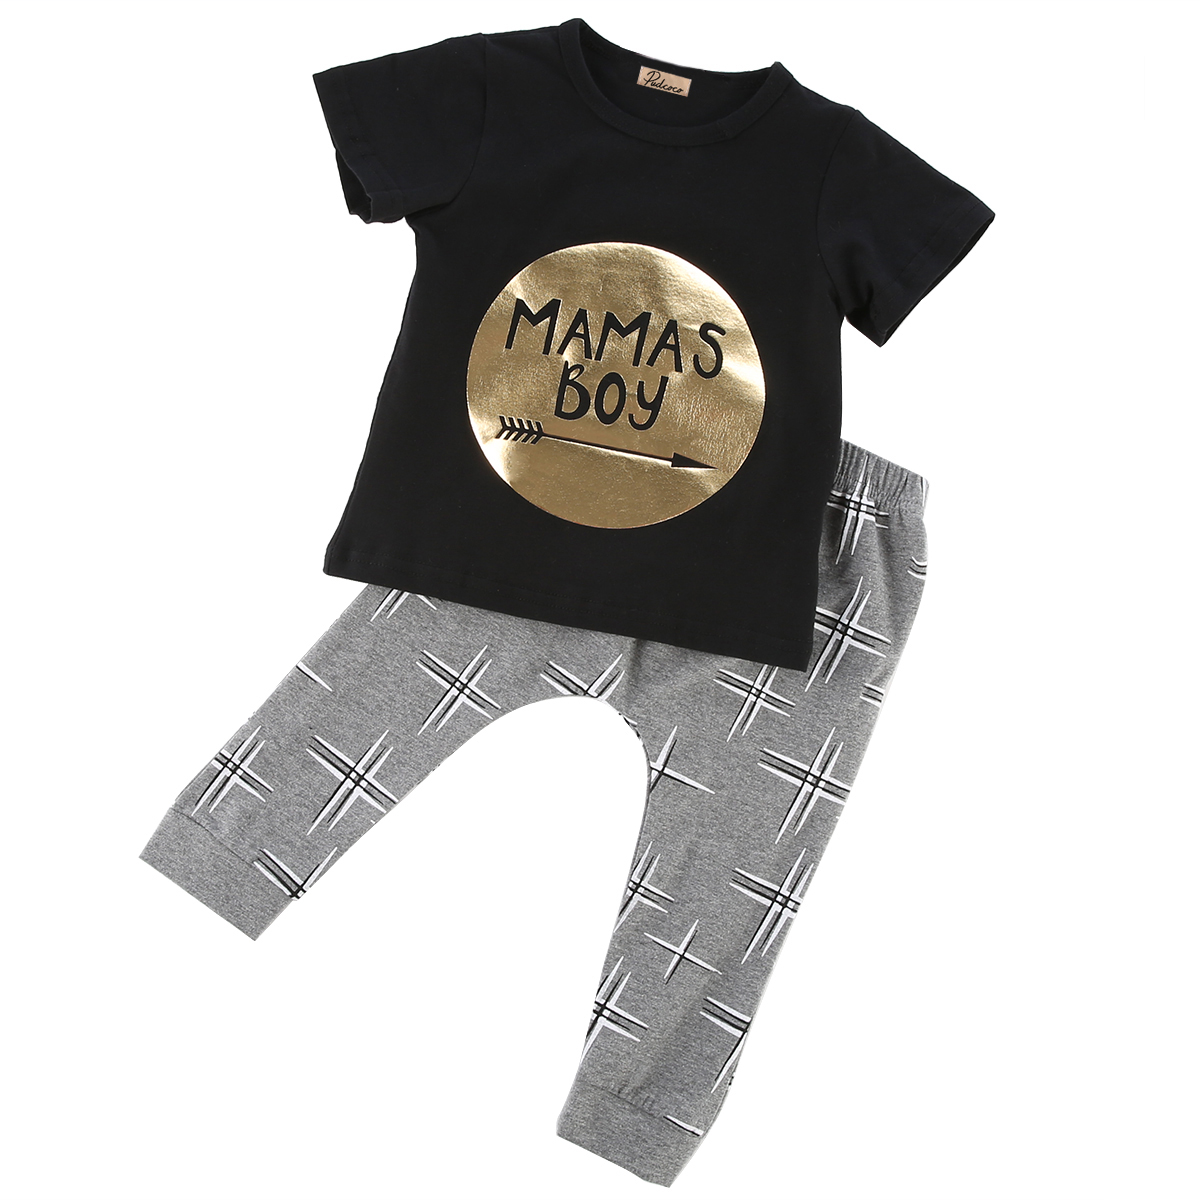 2Pcs  Mamas Boys Printed Jumpsuit Outfit Sets  Newborn Toddler Baby boys girls Infant Clothes Golden Letter 0-24M baby romper sets for girls newborn infant bebe clothes toddler children clothes cotton girls jumpsuit clothes suit for 3 24m